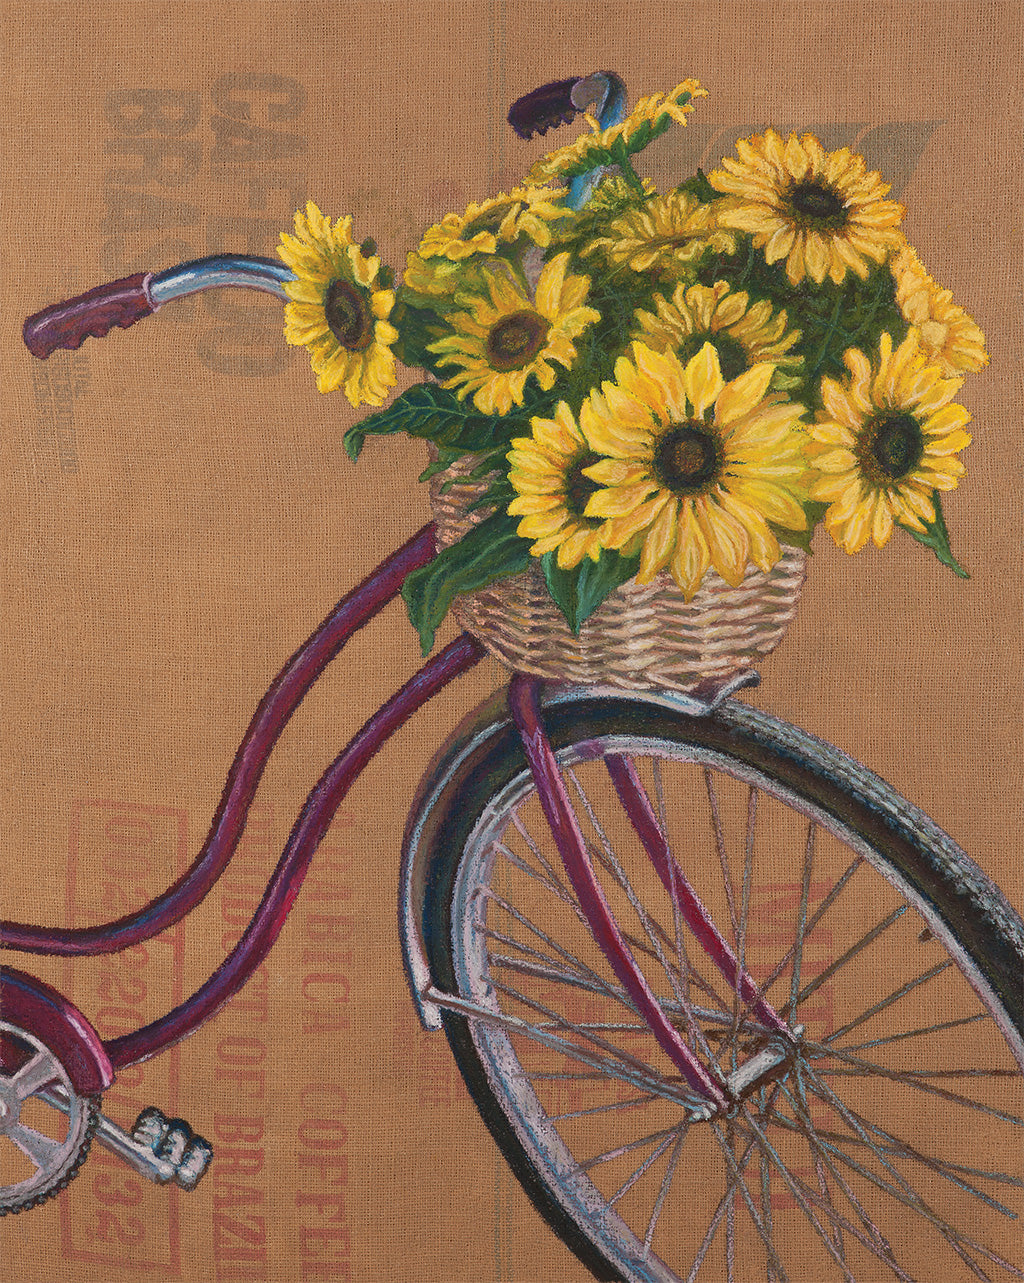 Sunflower Bicycle